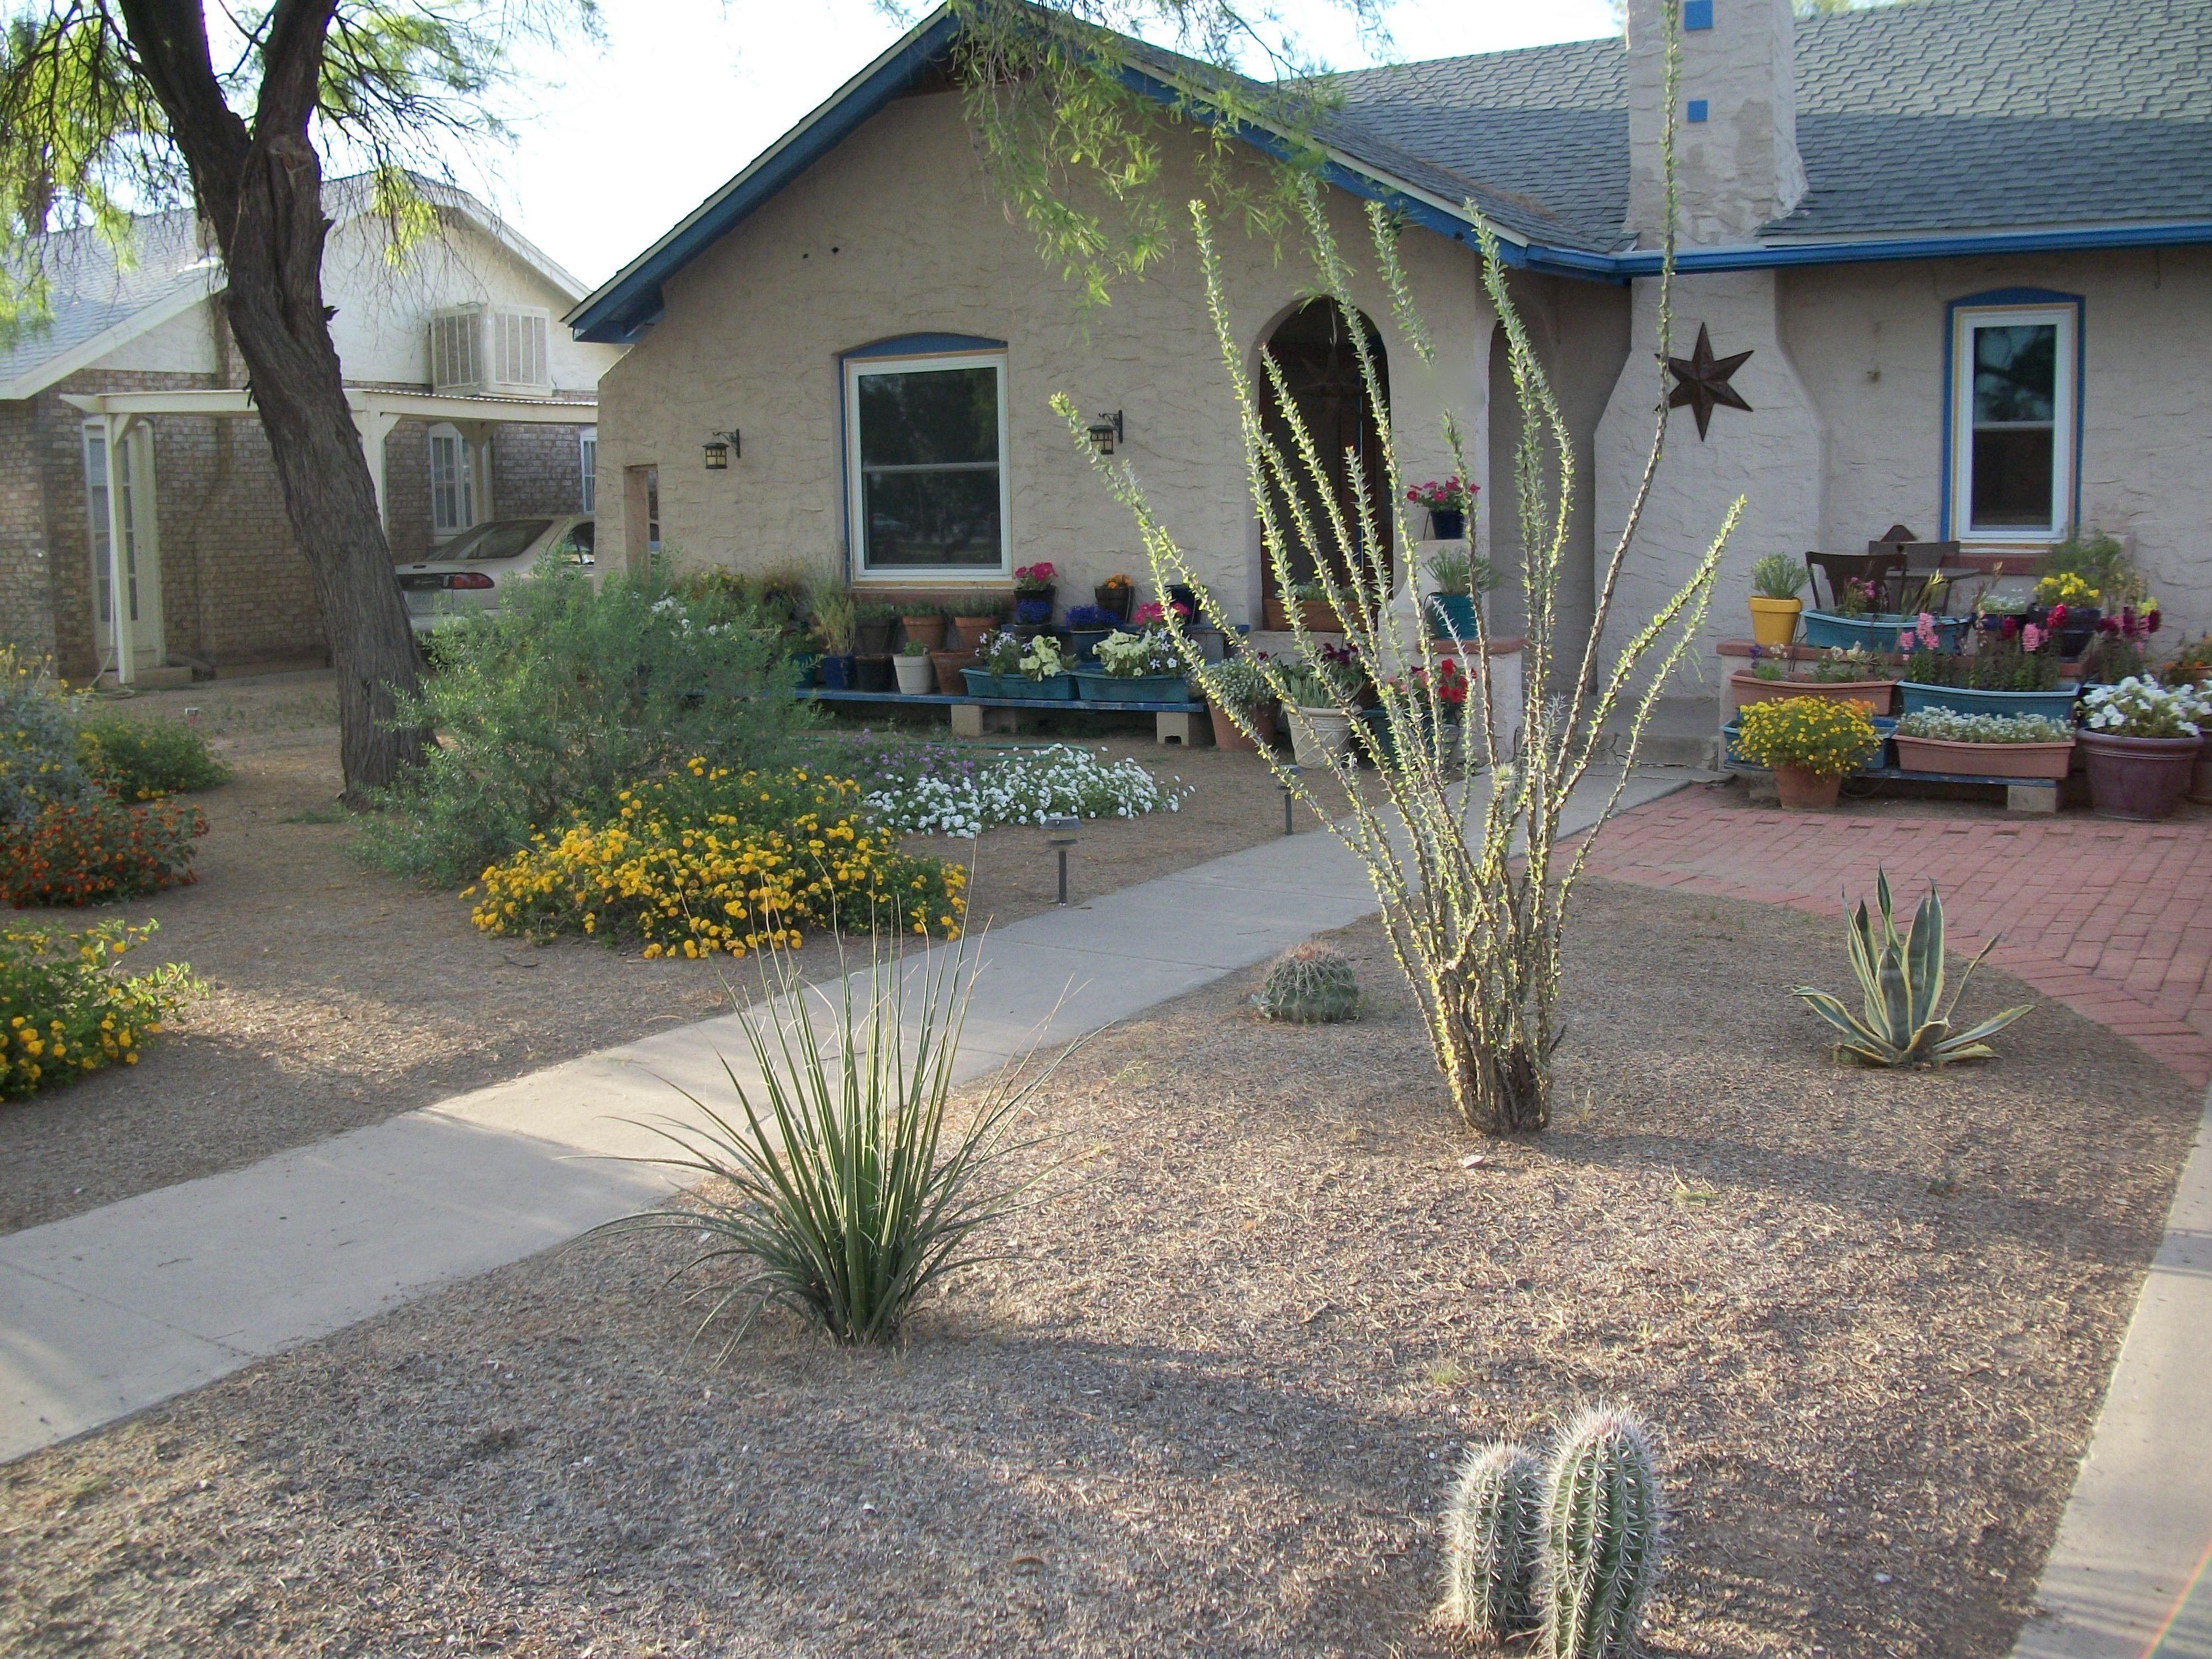 10 Most Popular Desert Landscaping Ideas For Front Yard desert garden ideas unique download front yard desert landscaping 2021